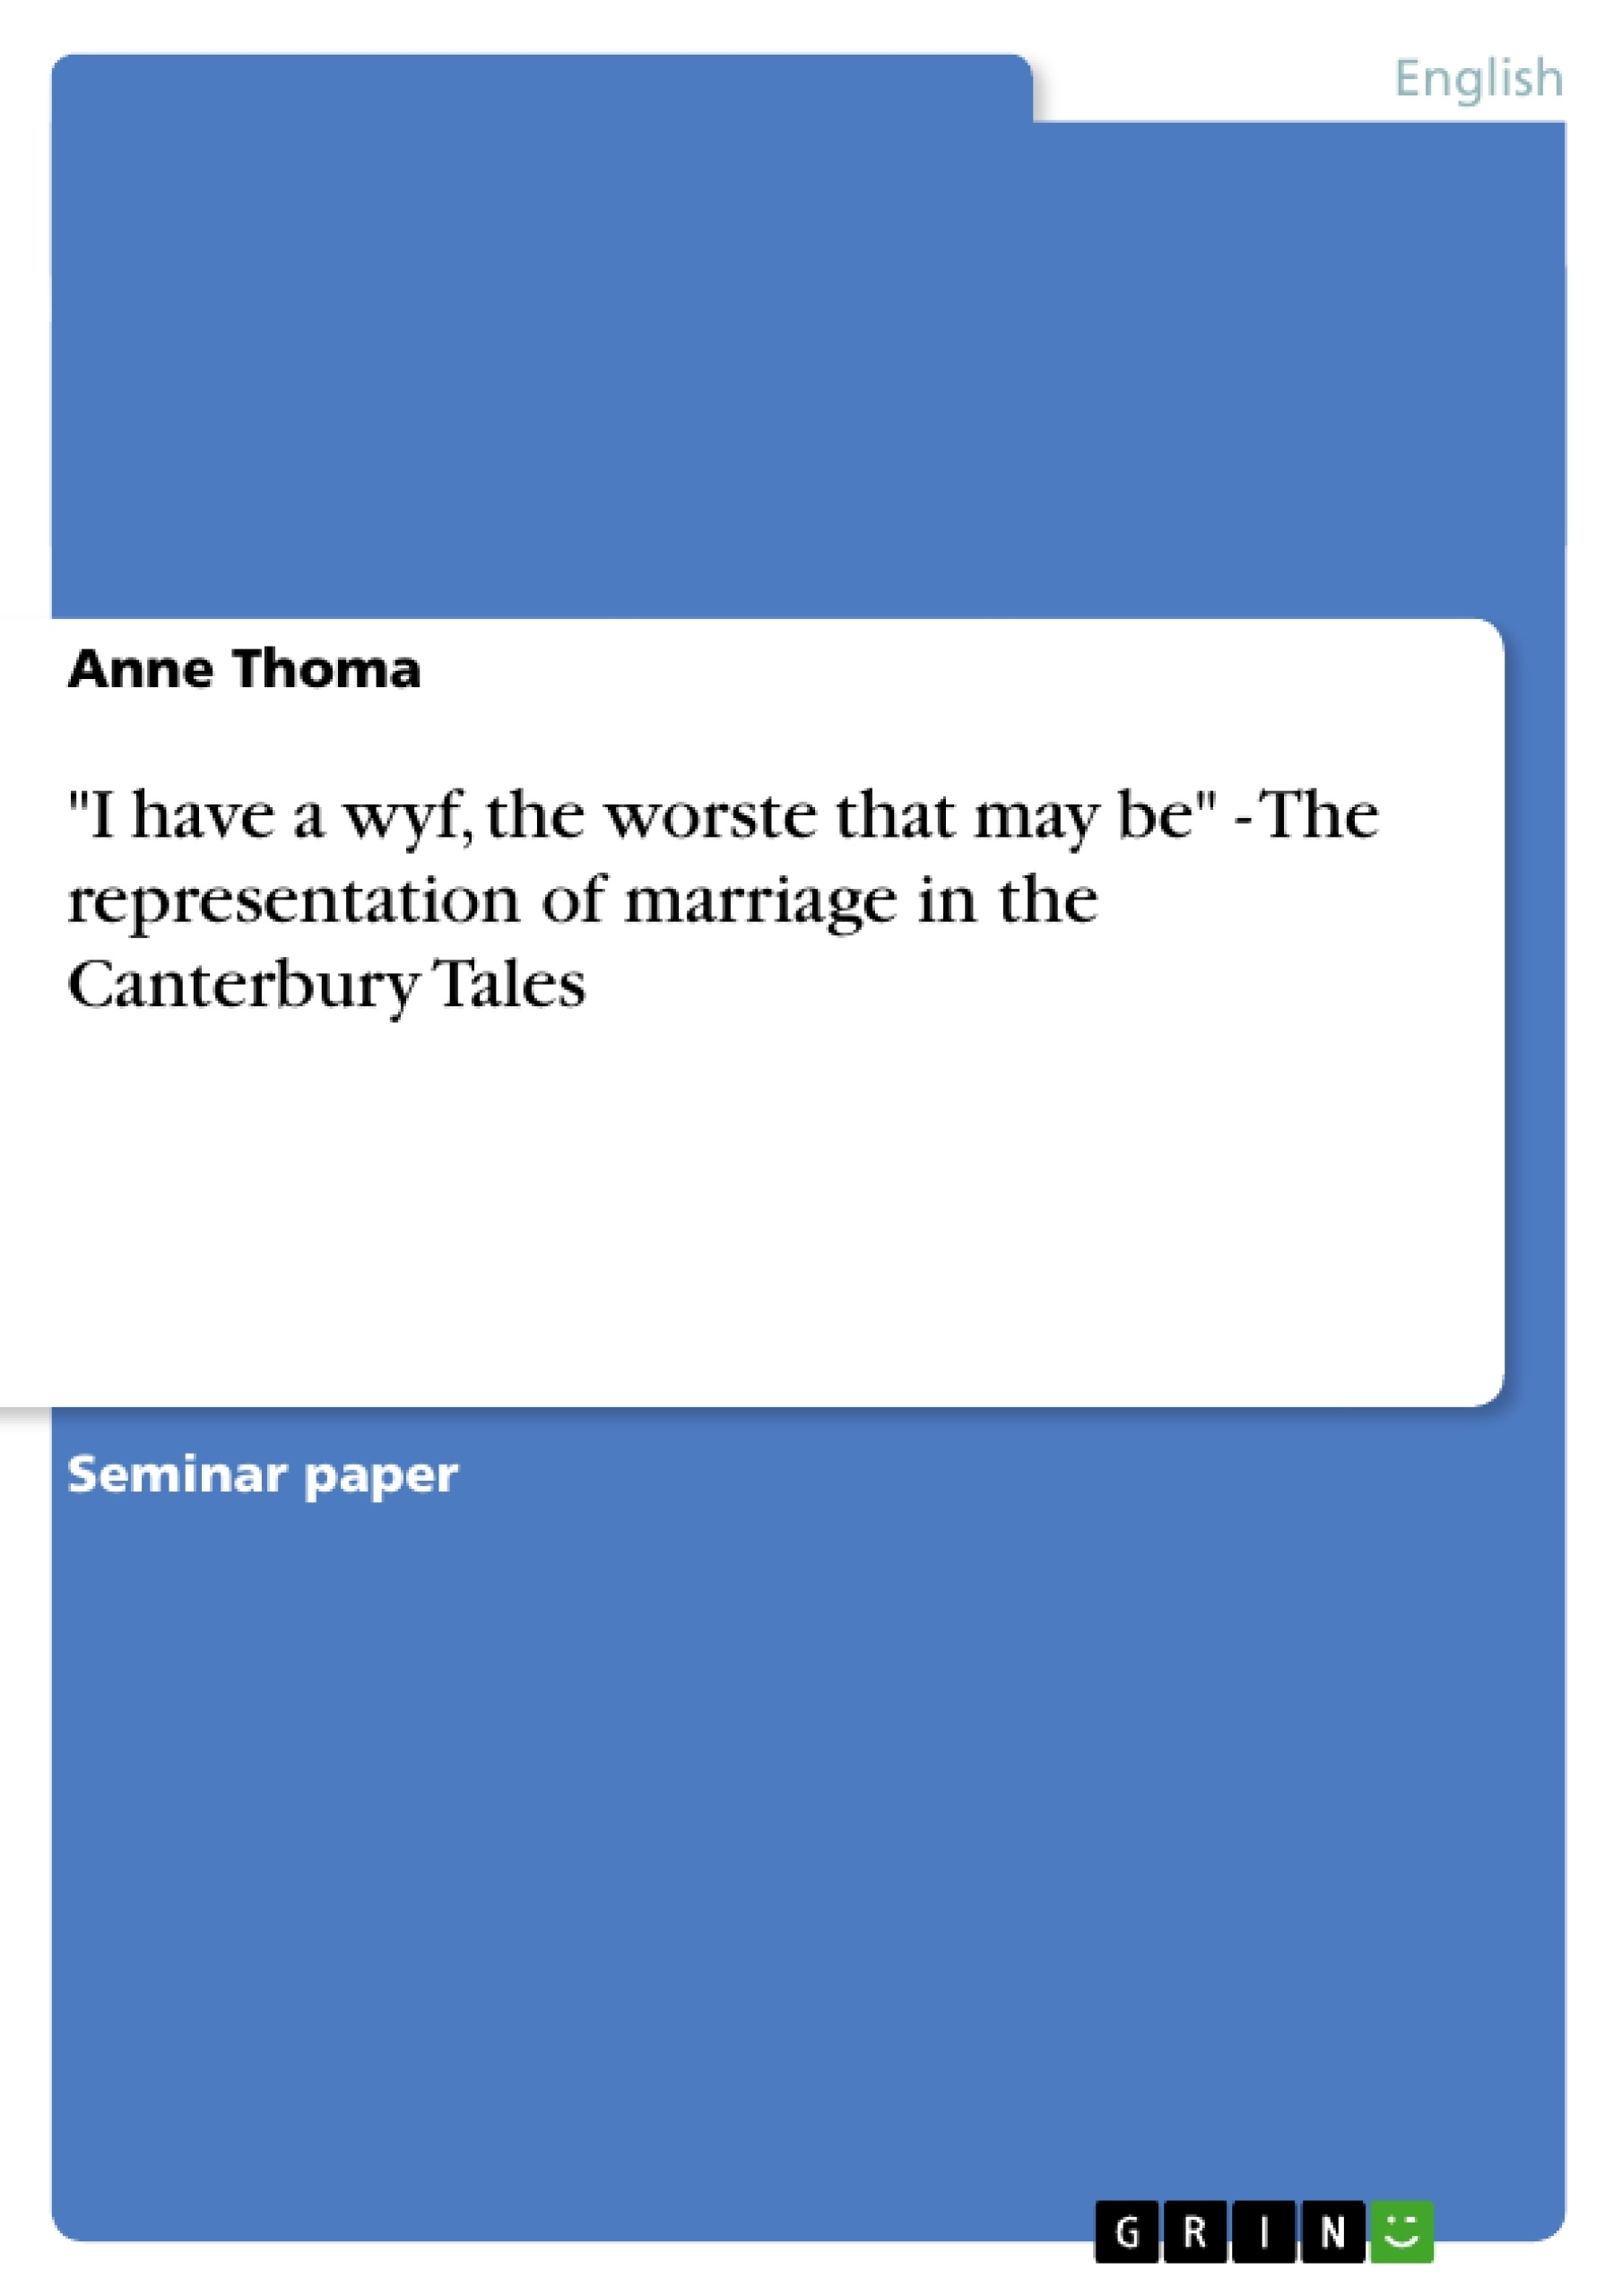 """Title: """"I have a wyf, the worste that may be"""" - The representation of marriage in the Canterbury Tales"""